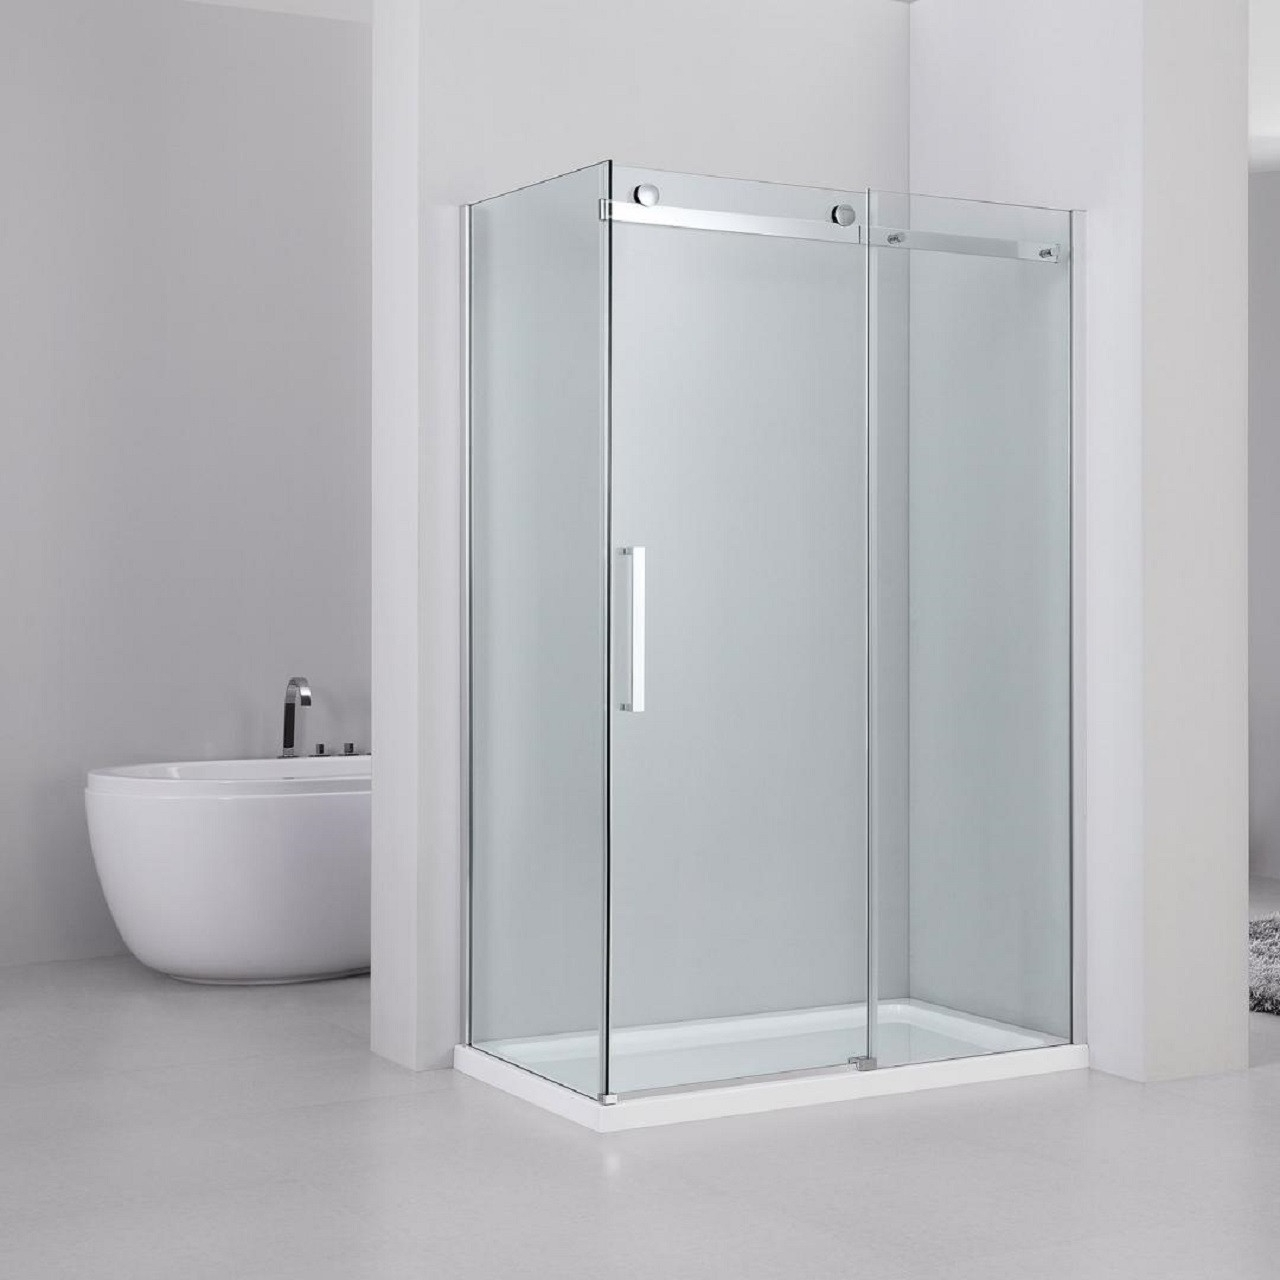 series 10 roller 1000mm x 800mm sliding door shower enclosure 34158